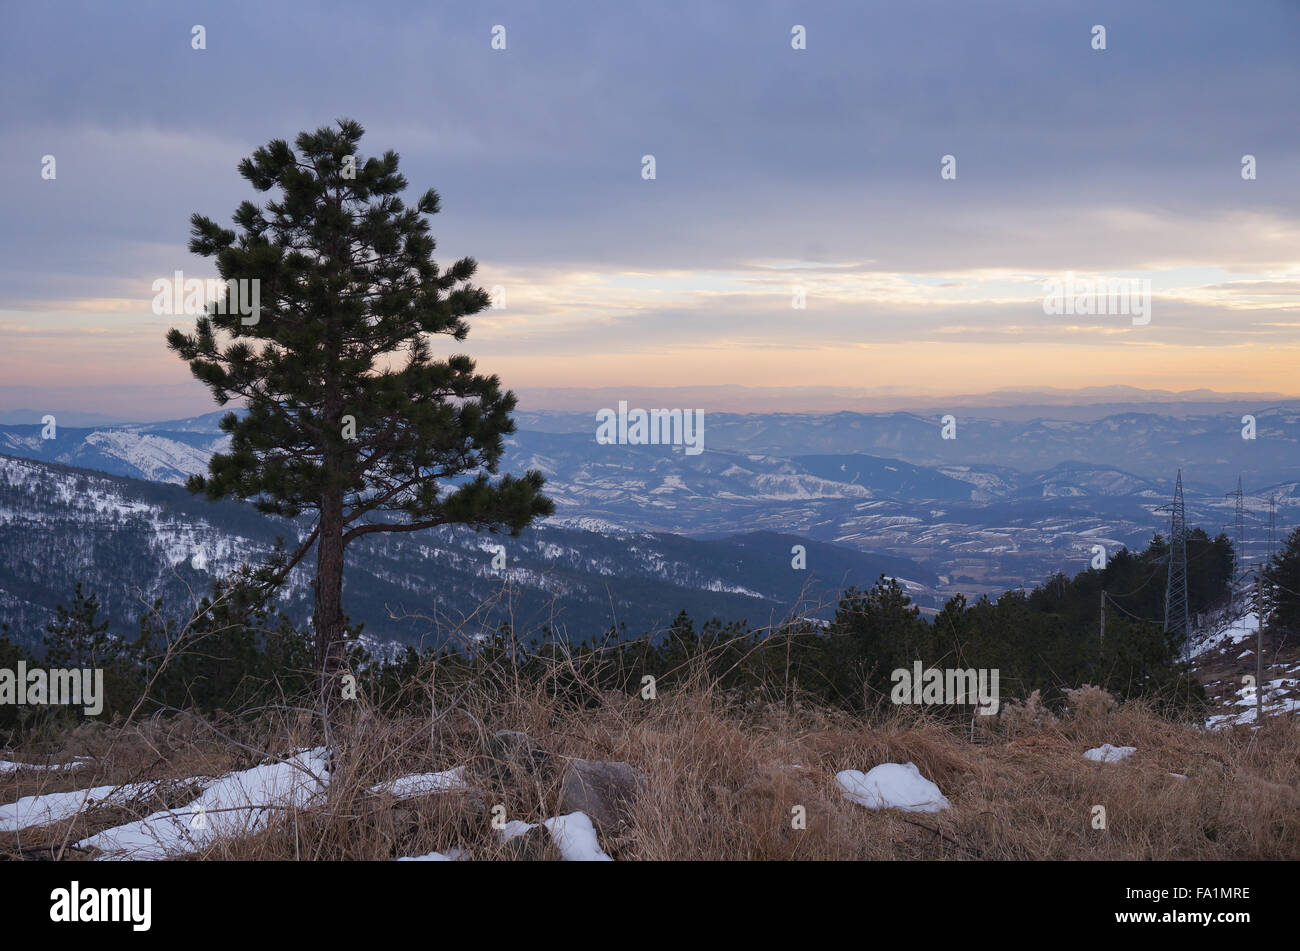 Sunset on Zlatibor mountain. One tree at tom of the hill - Stock Image